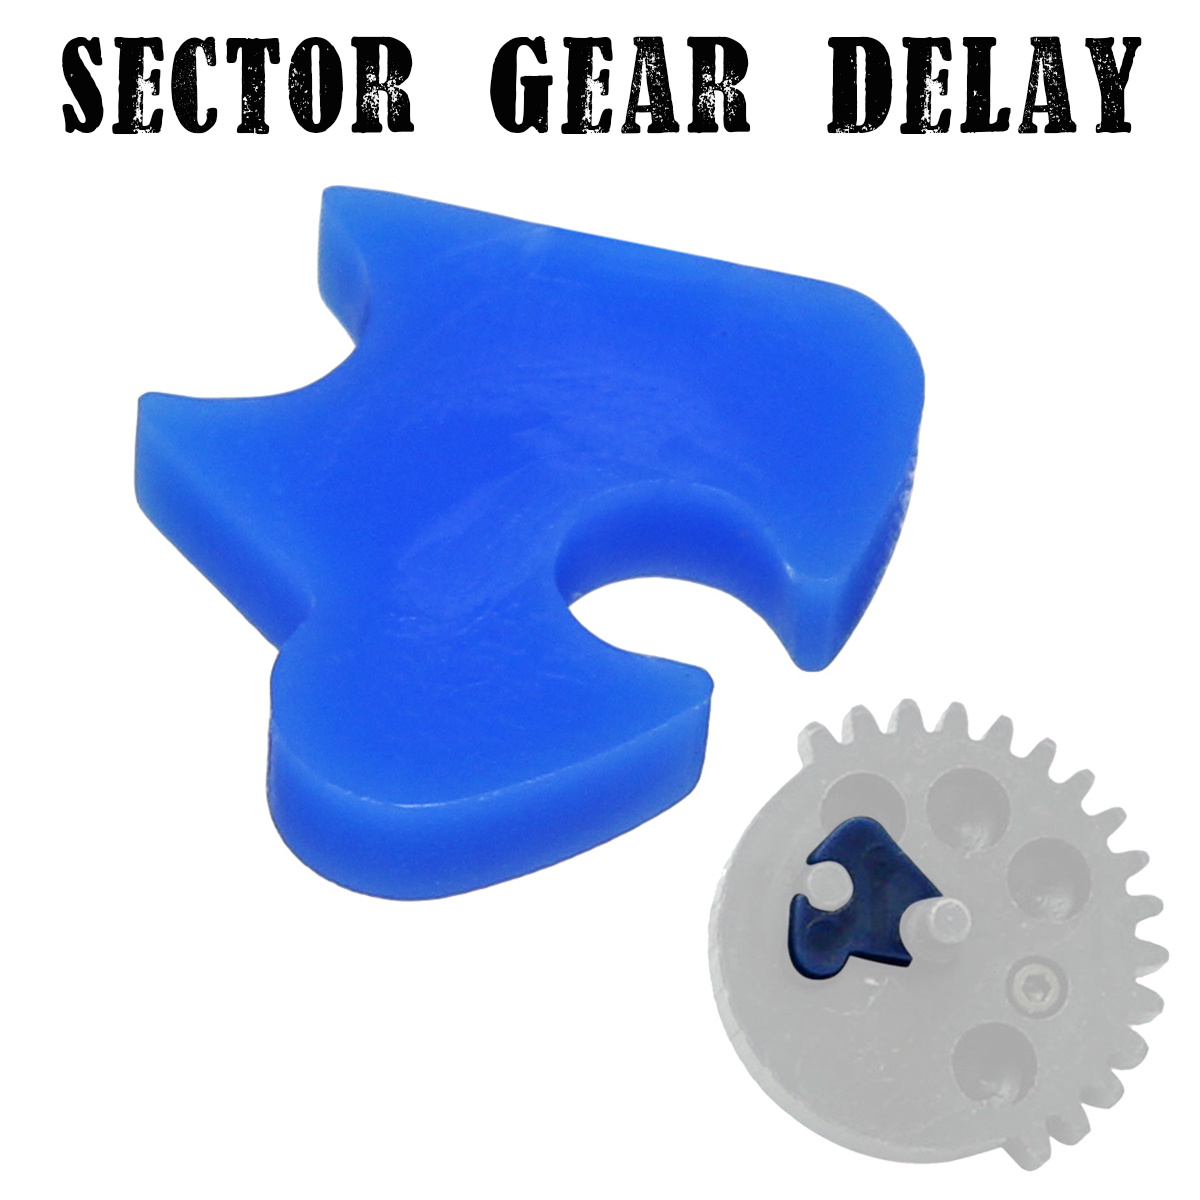 Sector Gear Nylon Delay Gel Ball Blasters For M4 RIS M4A1 Scar V2 Ump 8th Game Water Toy Guns Replacement Accessories